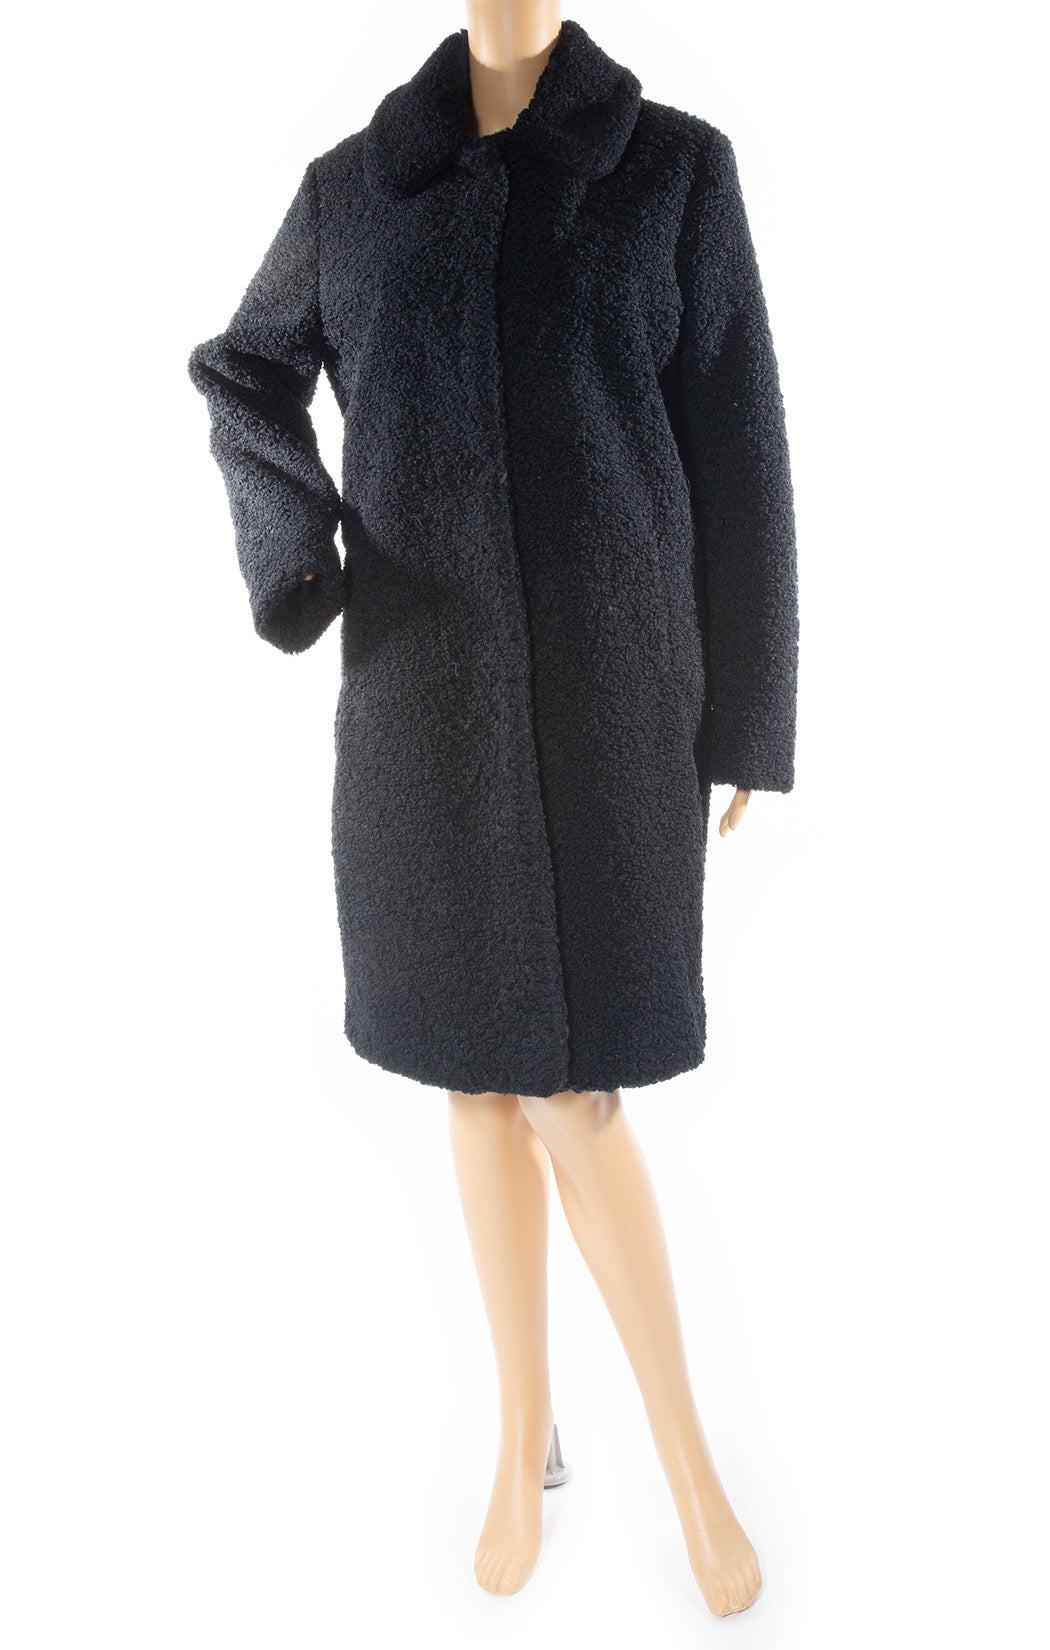 Front view of ZOE KARSSEN Coat Size: Medium